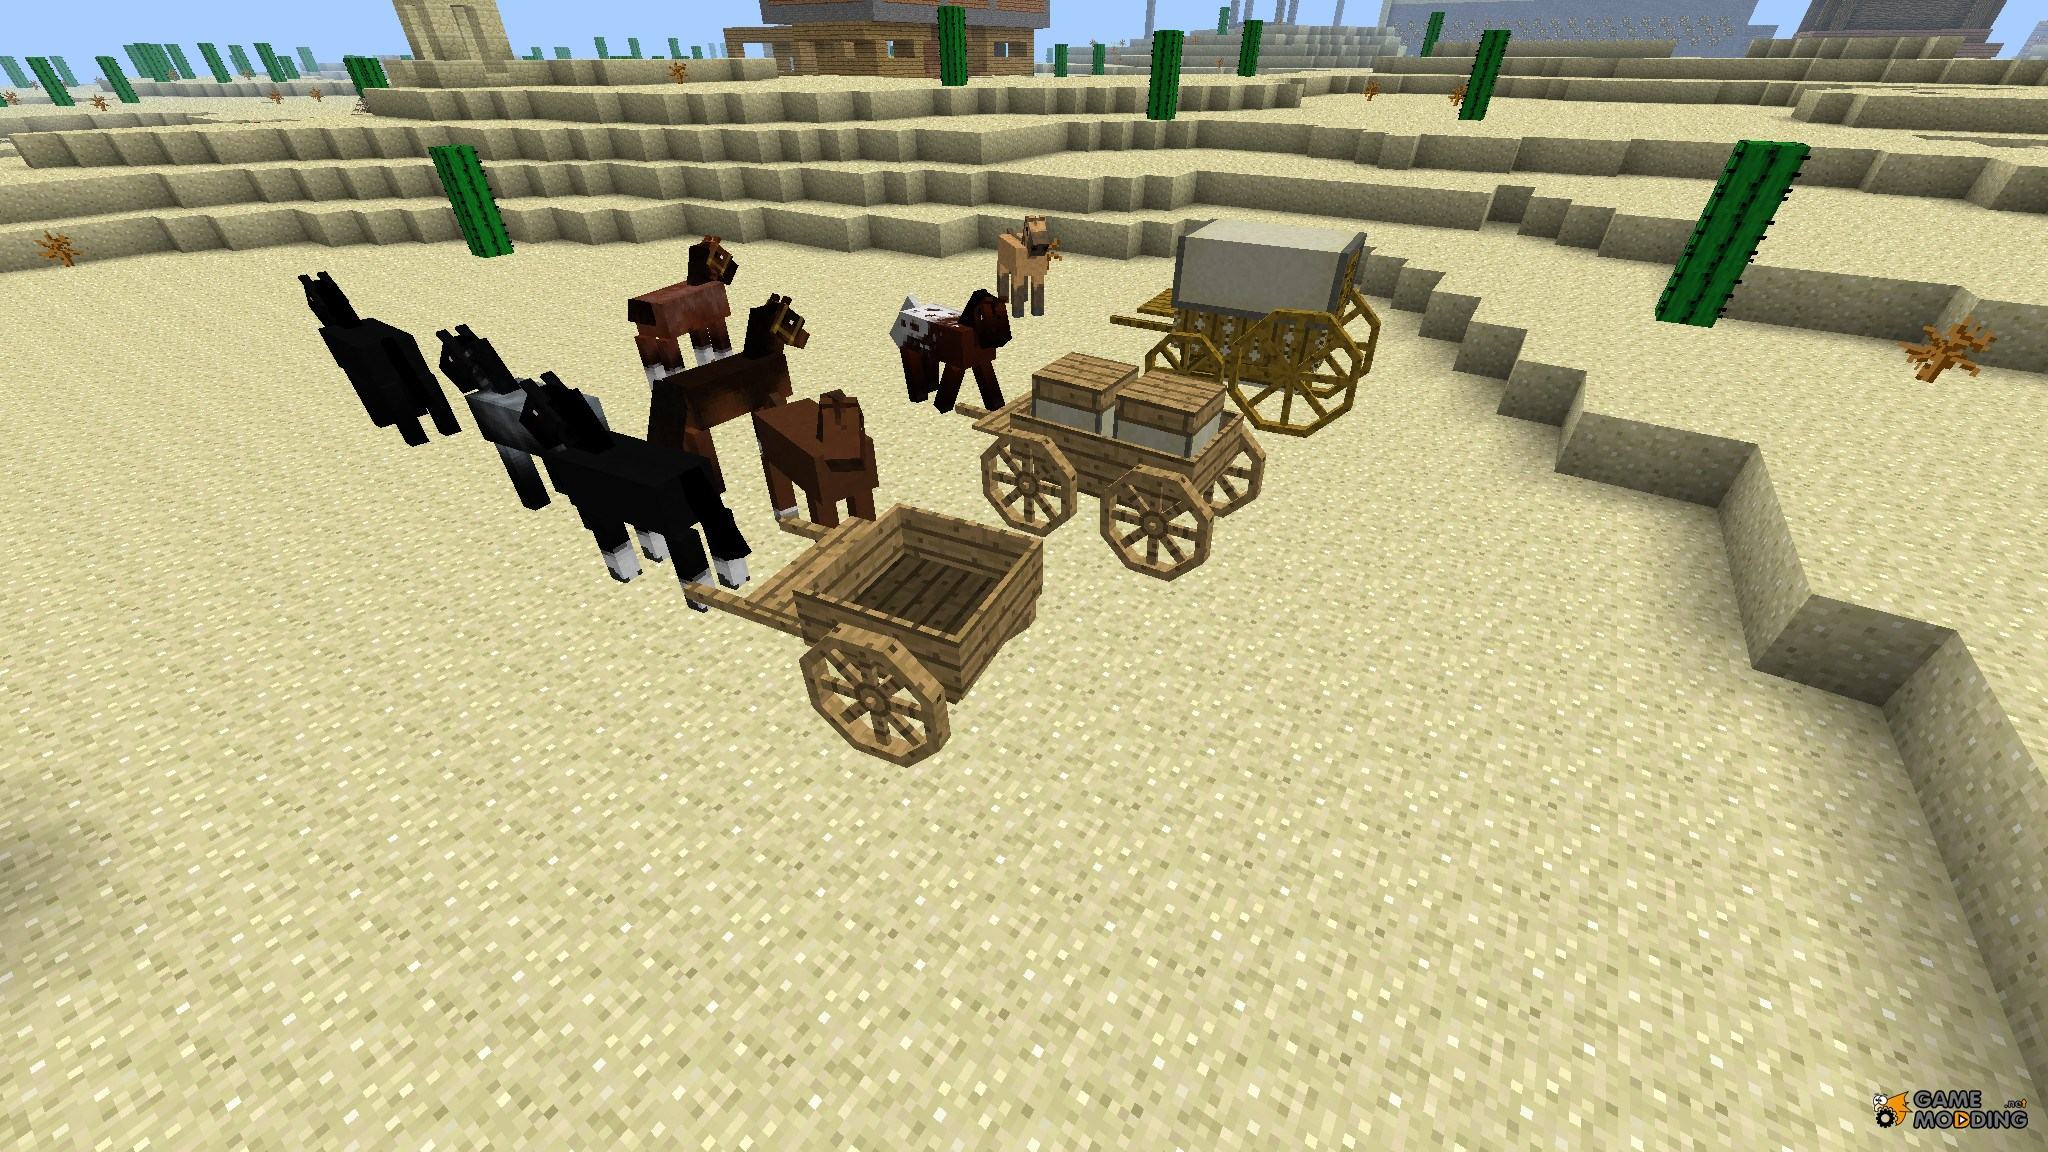 Dantdm Wallpapers 79 Images Minecraft Chariot Racing